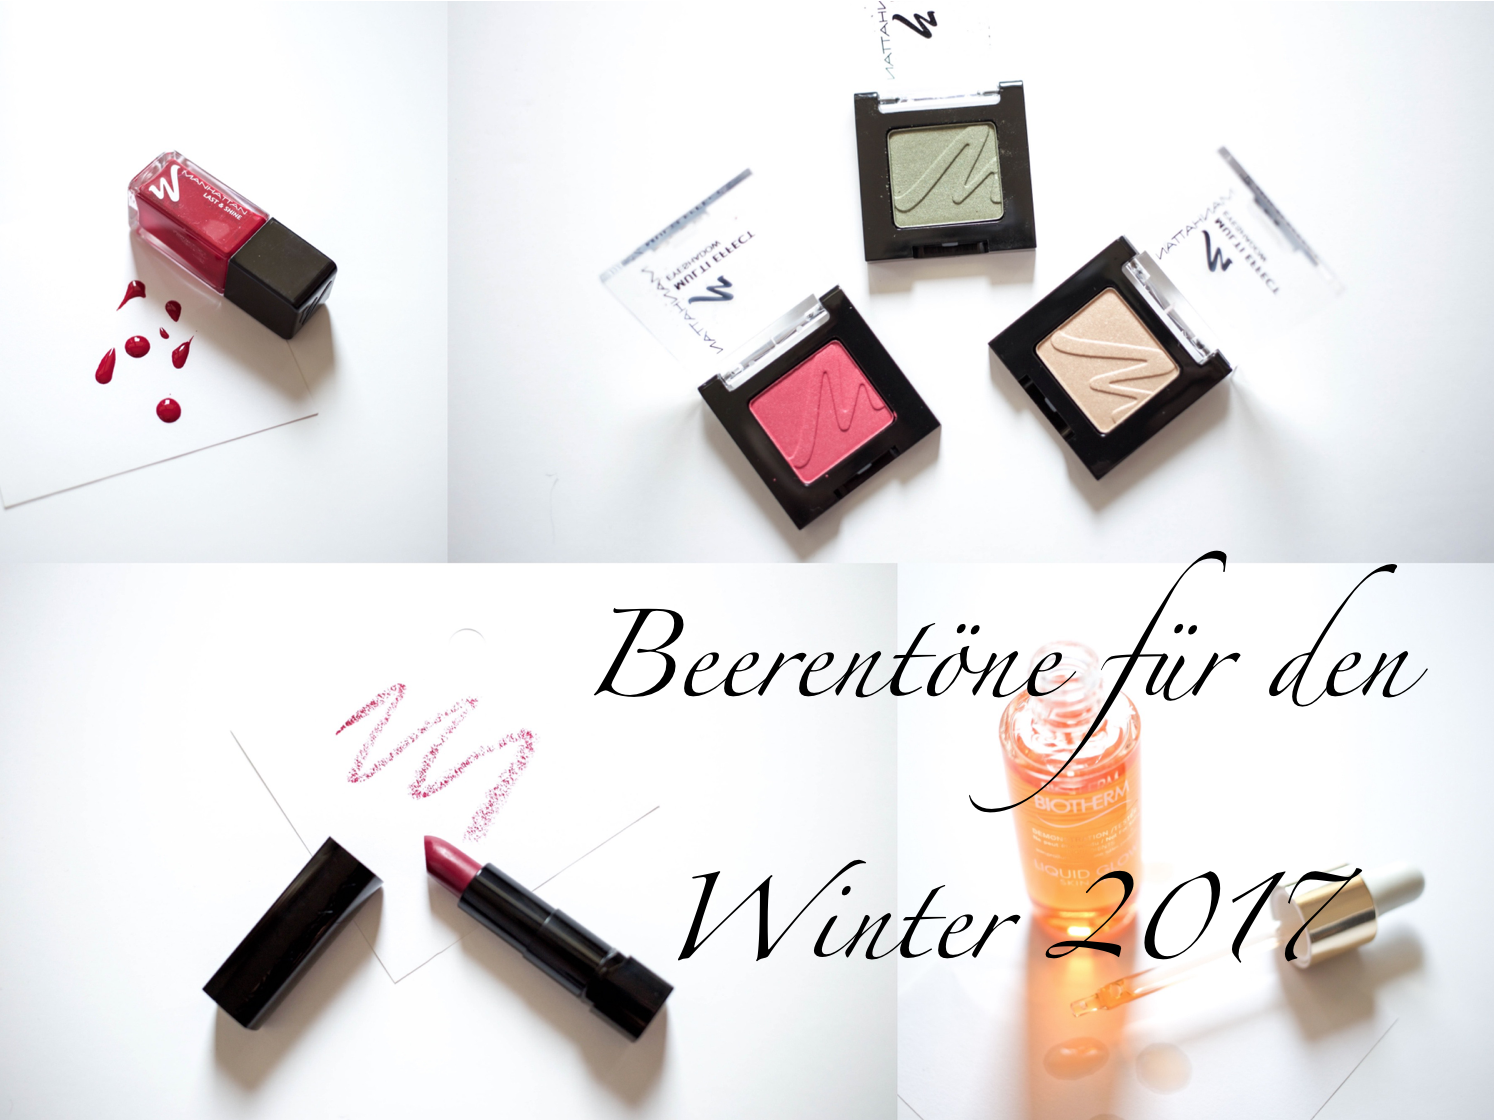 beerentoene-winter-2017-beautyblog-fashionblog-koeln-berlin